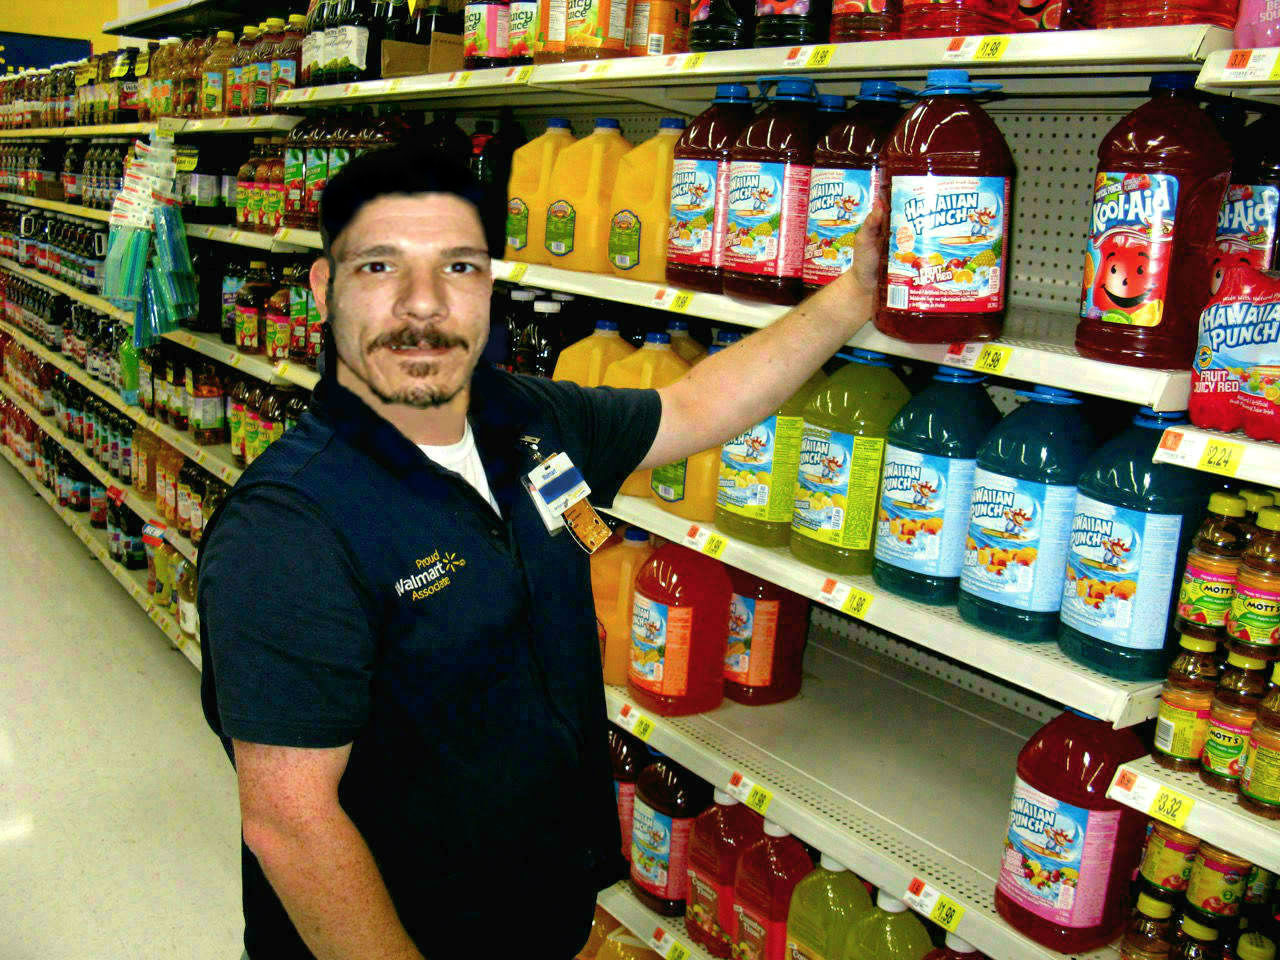 Today's News: Freeman Fly Takes A Job At Walmart Stocking Shelves